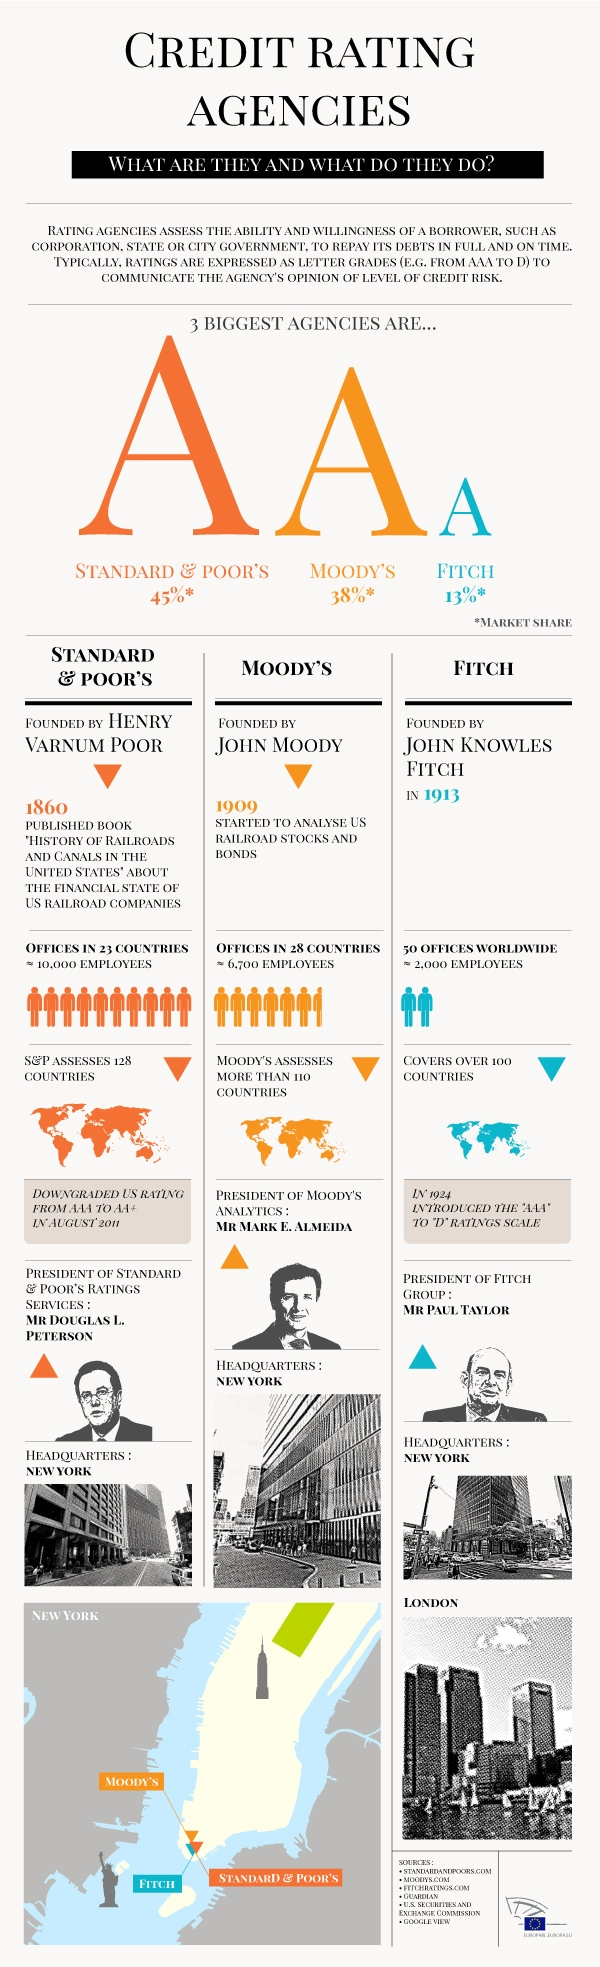 Infographic on credit rating agencies